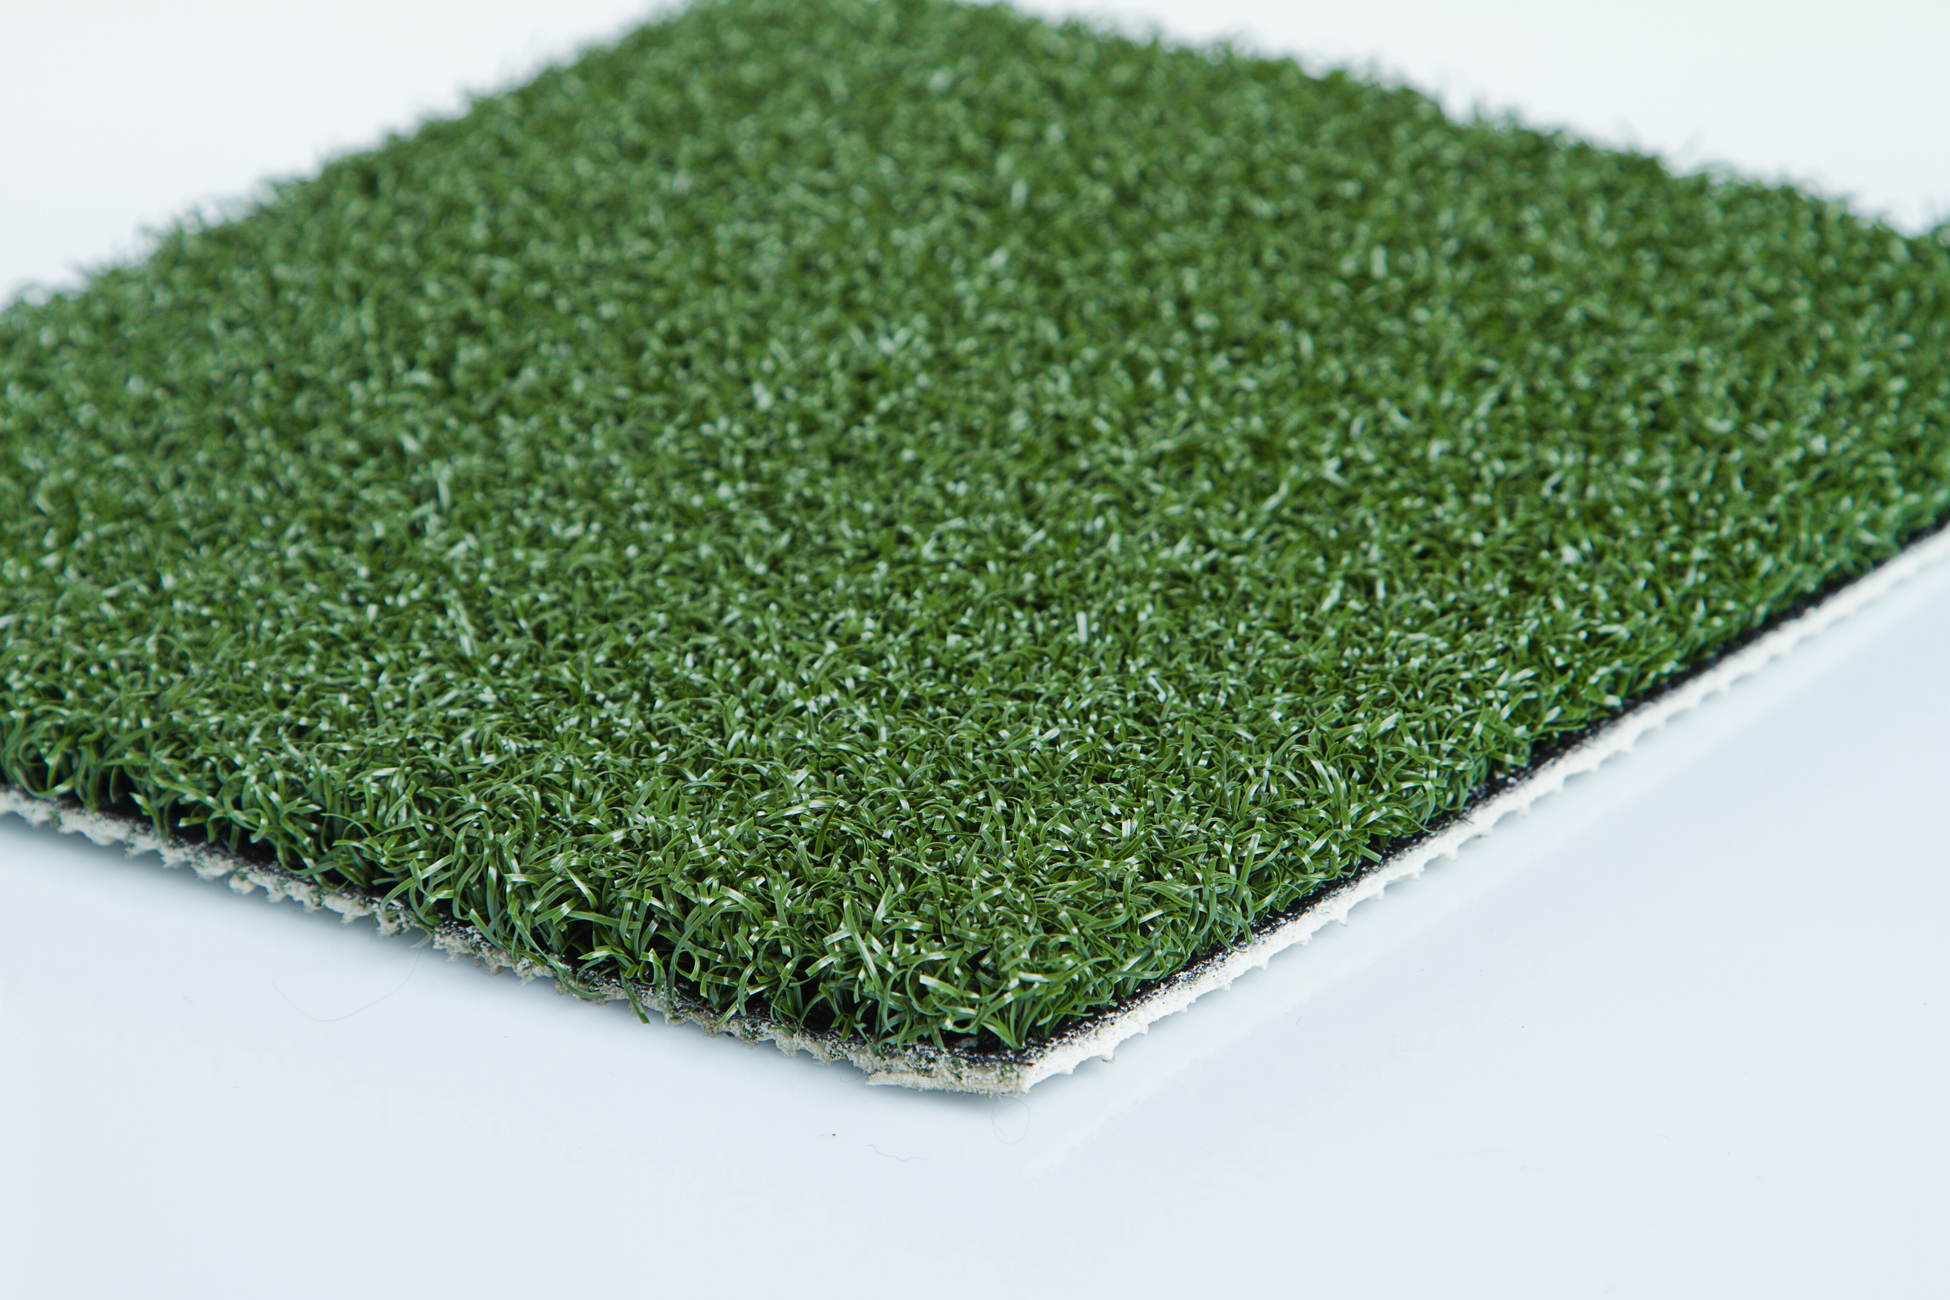 Newimagesyntheticturf.com